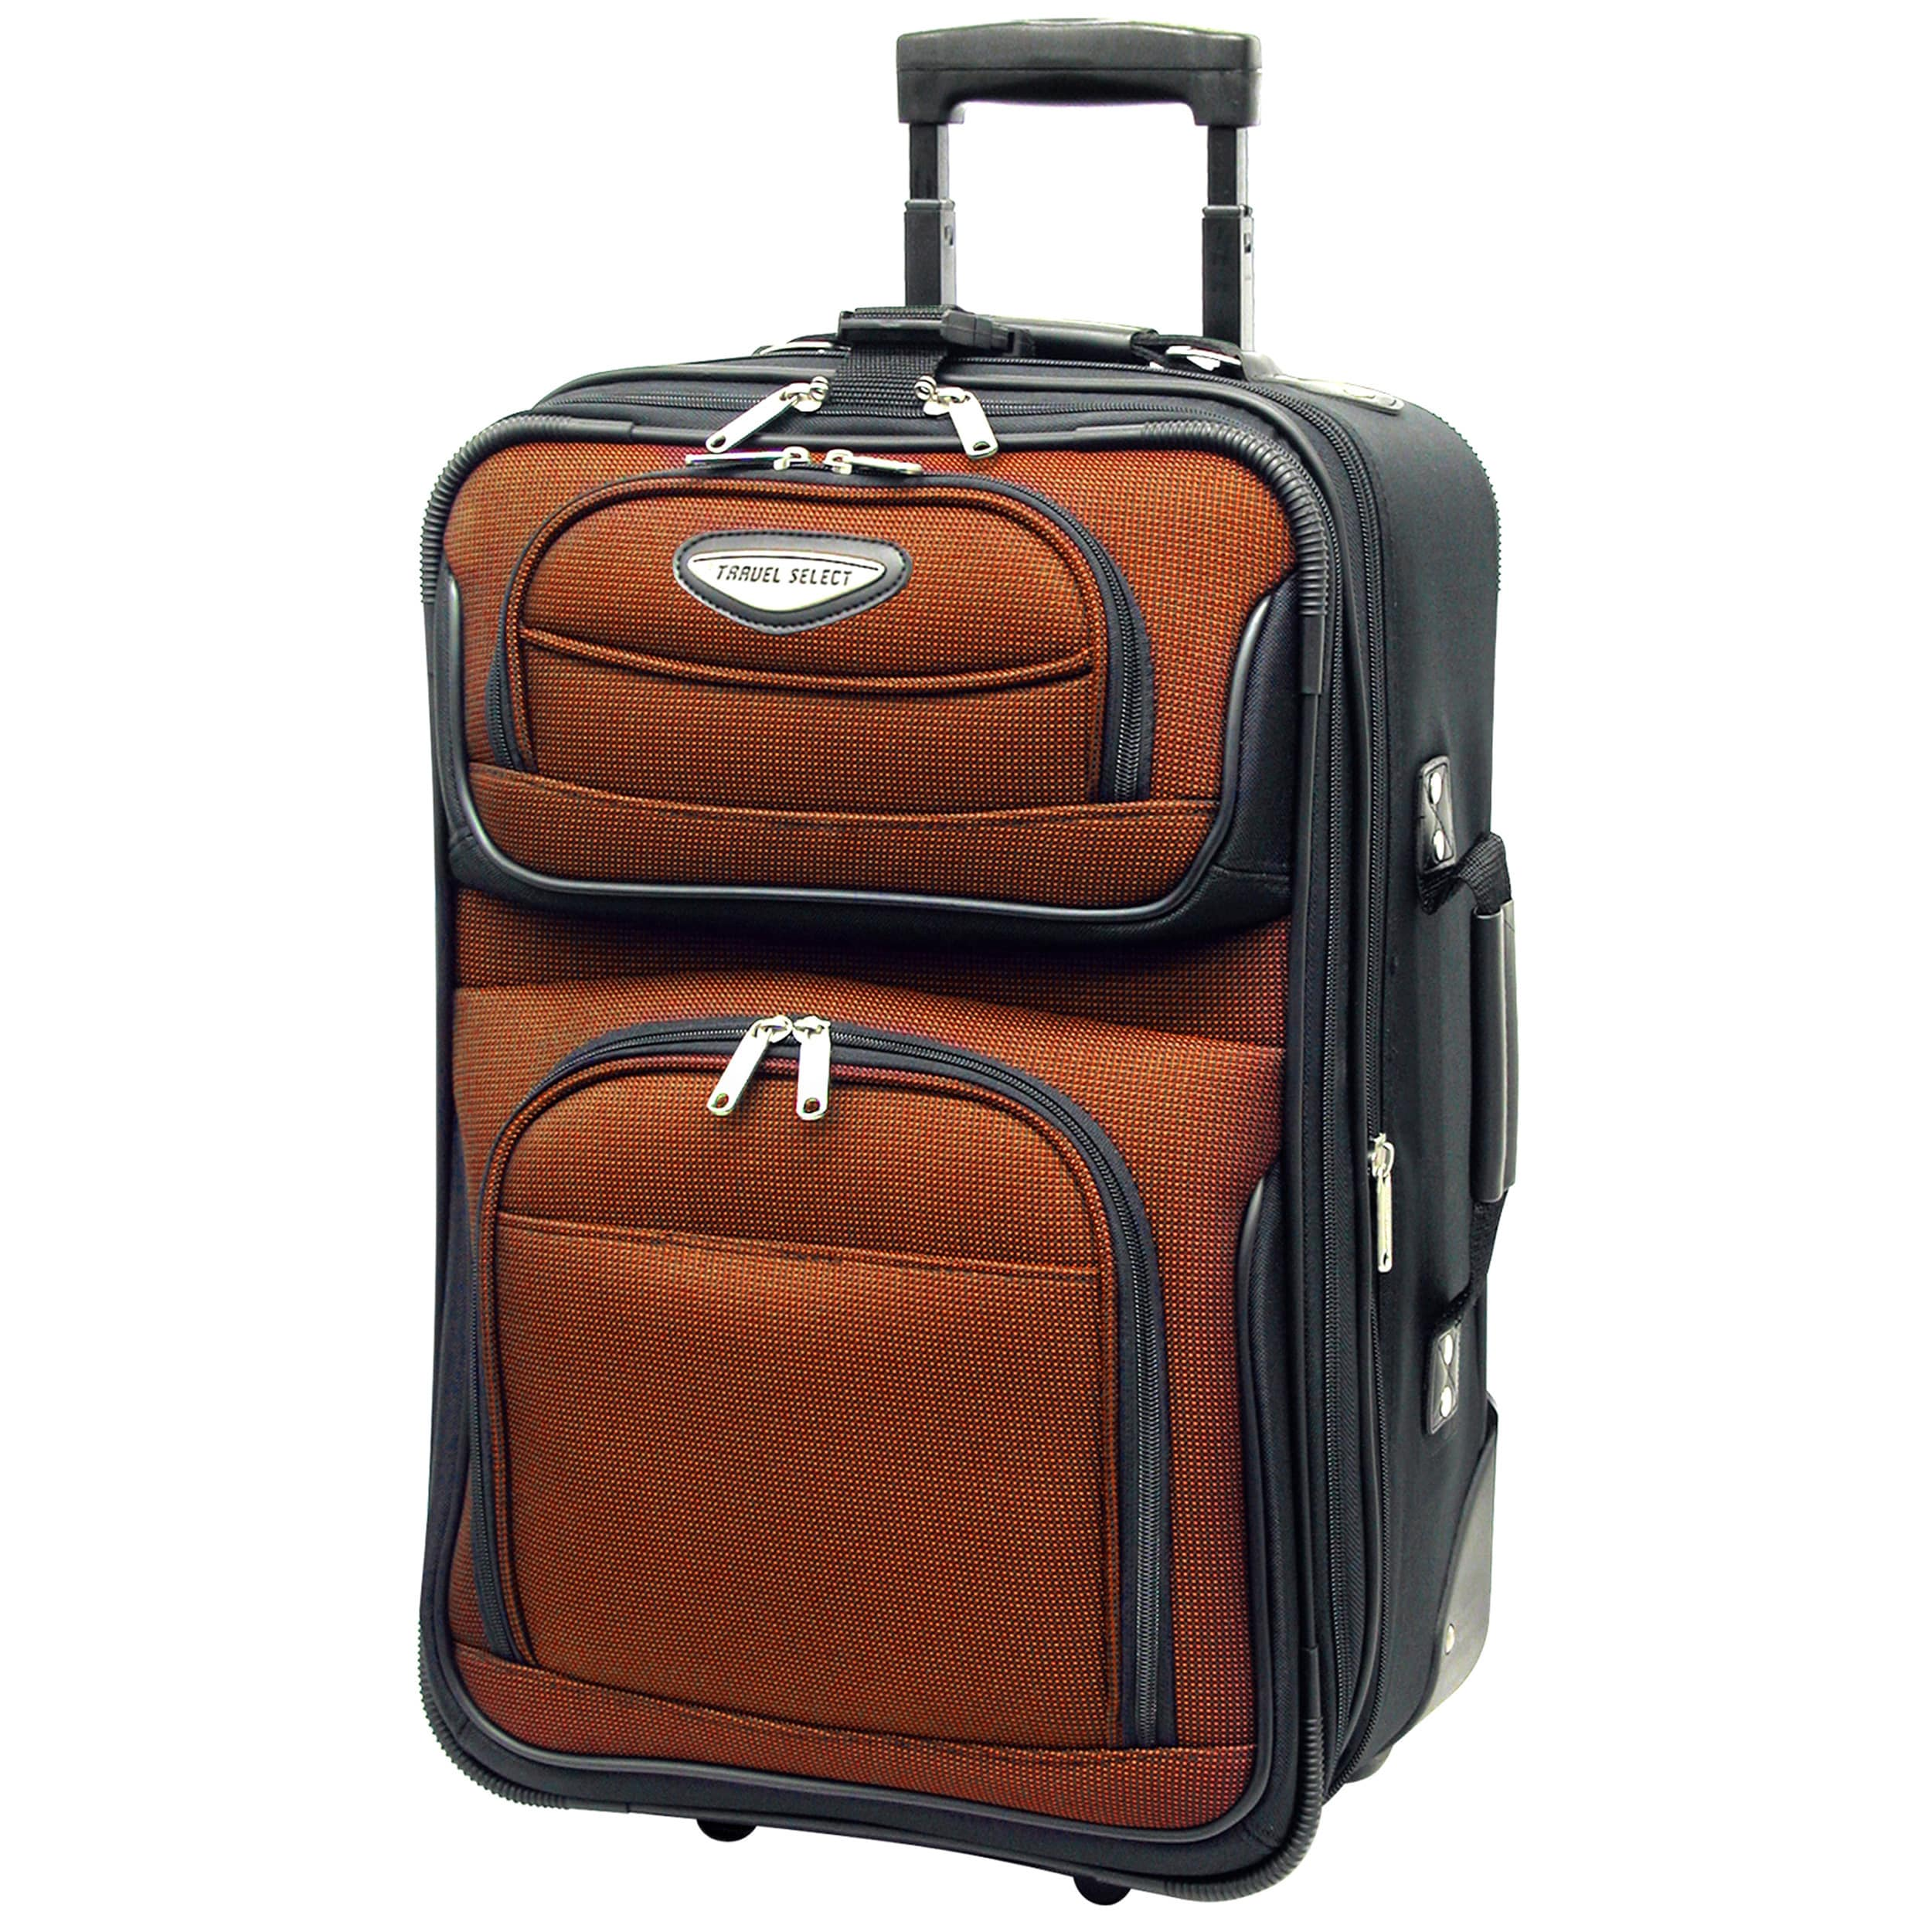 b0f6639116 Shop Travel Select by Traveler s Choice Amsterdam 21-inch Lightweight Carry  On Upright Suitcase - On Sale - Free Shipping Today - Overstock - 2969442